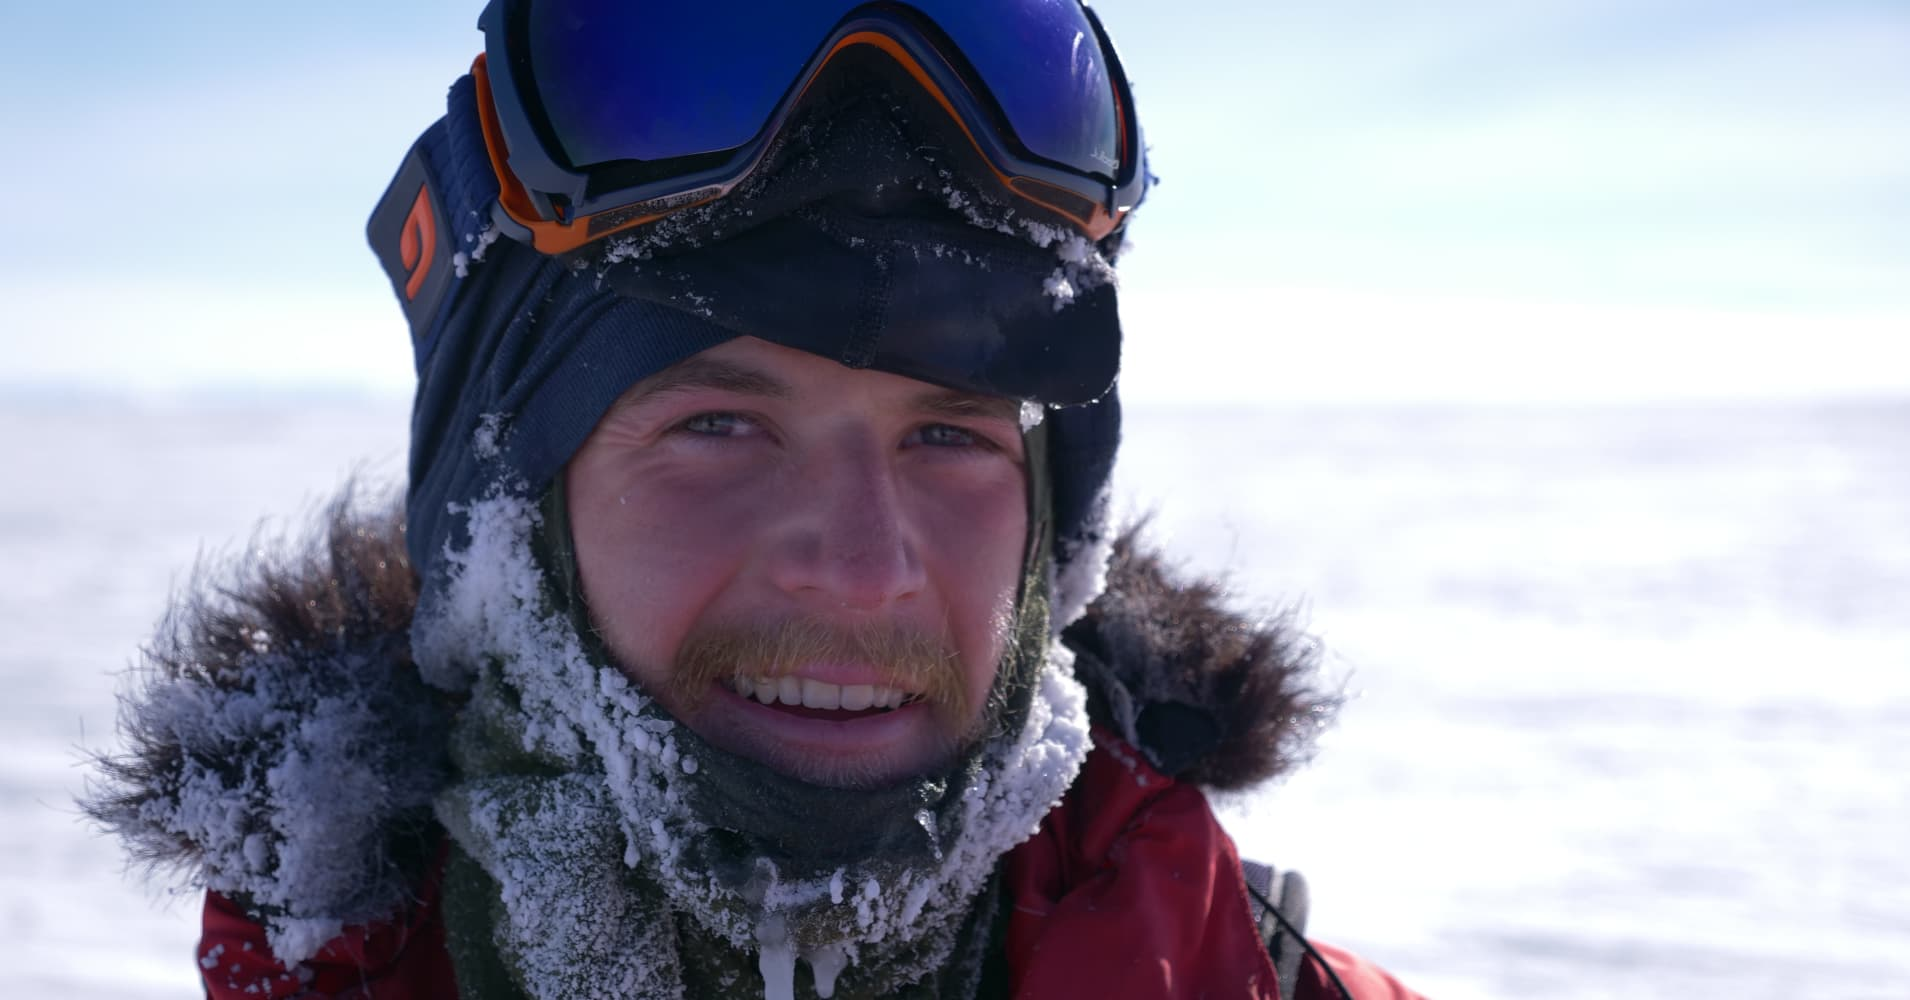 Barney Swan, 25, photographed during the world's first renewable-energy powered expedition to the South Pole in 2016.